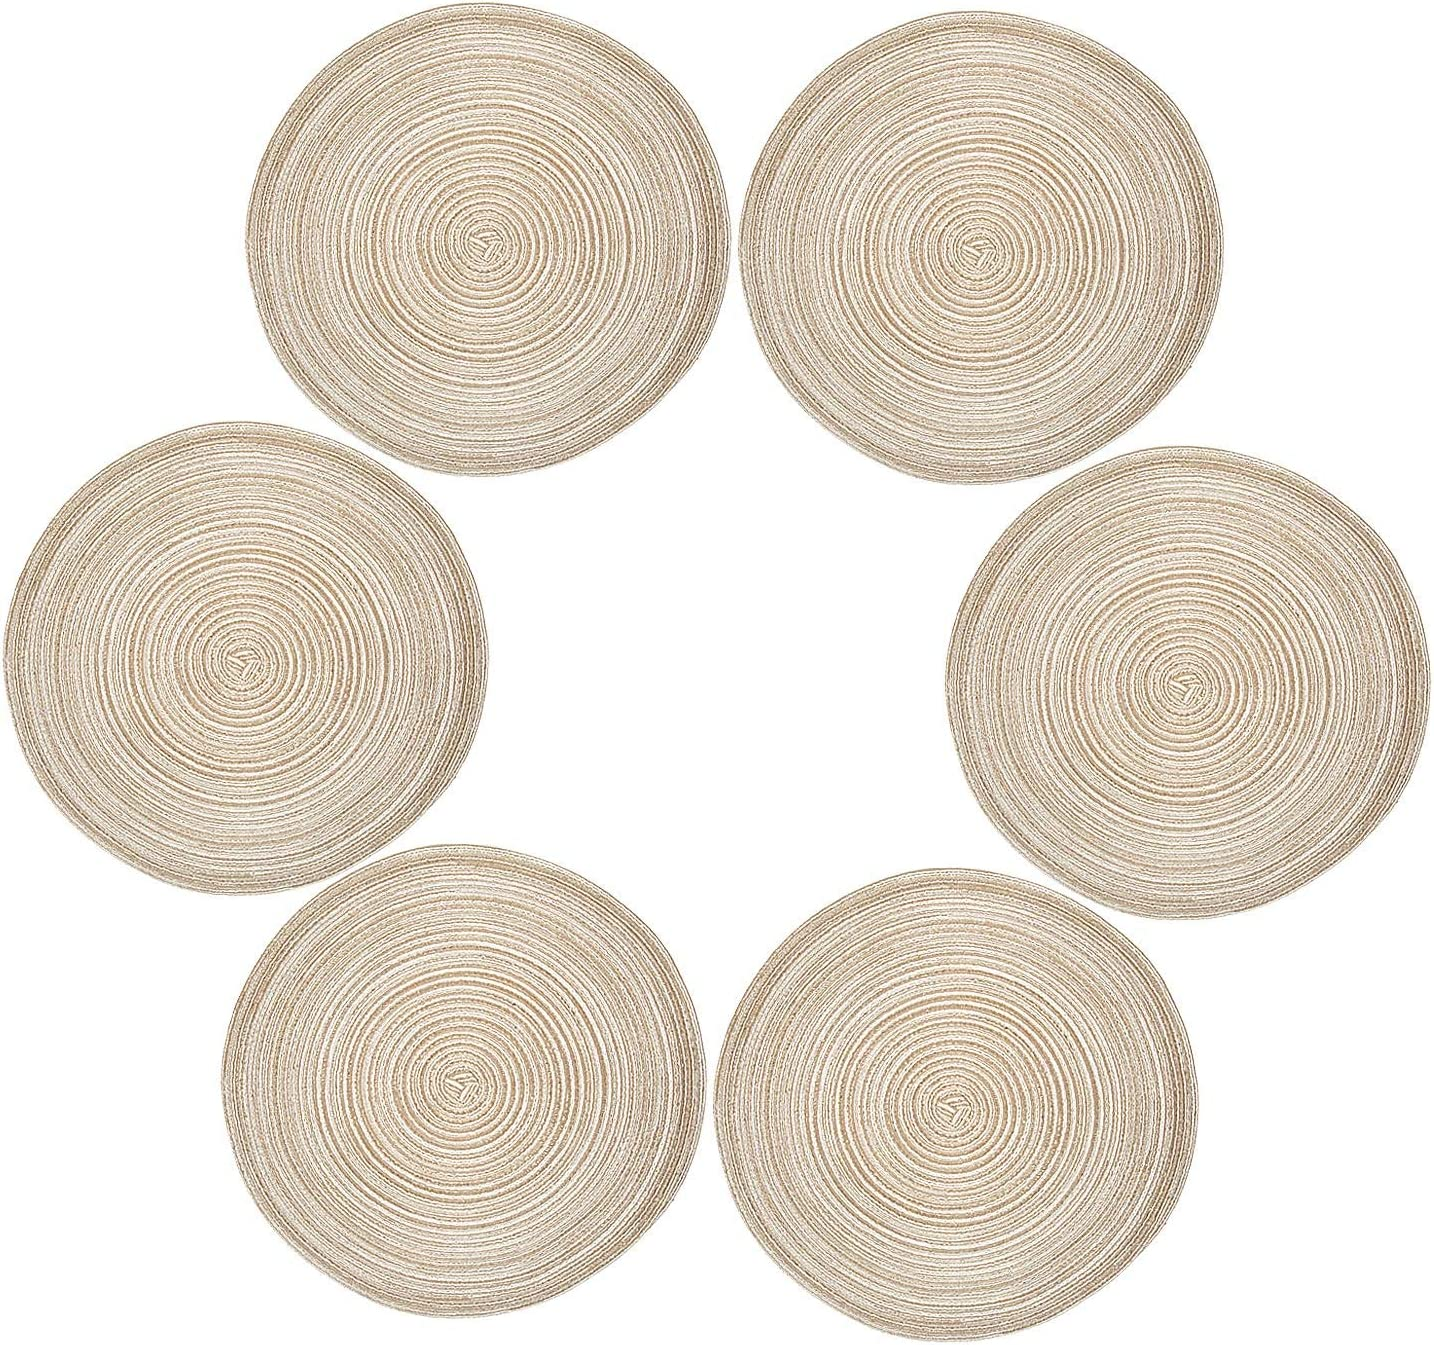 Diealles Placemats, Set of 9, Round, Heat Resistant, Woven Placemats,  Dining Table Mats, 39 cm